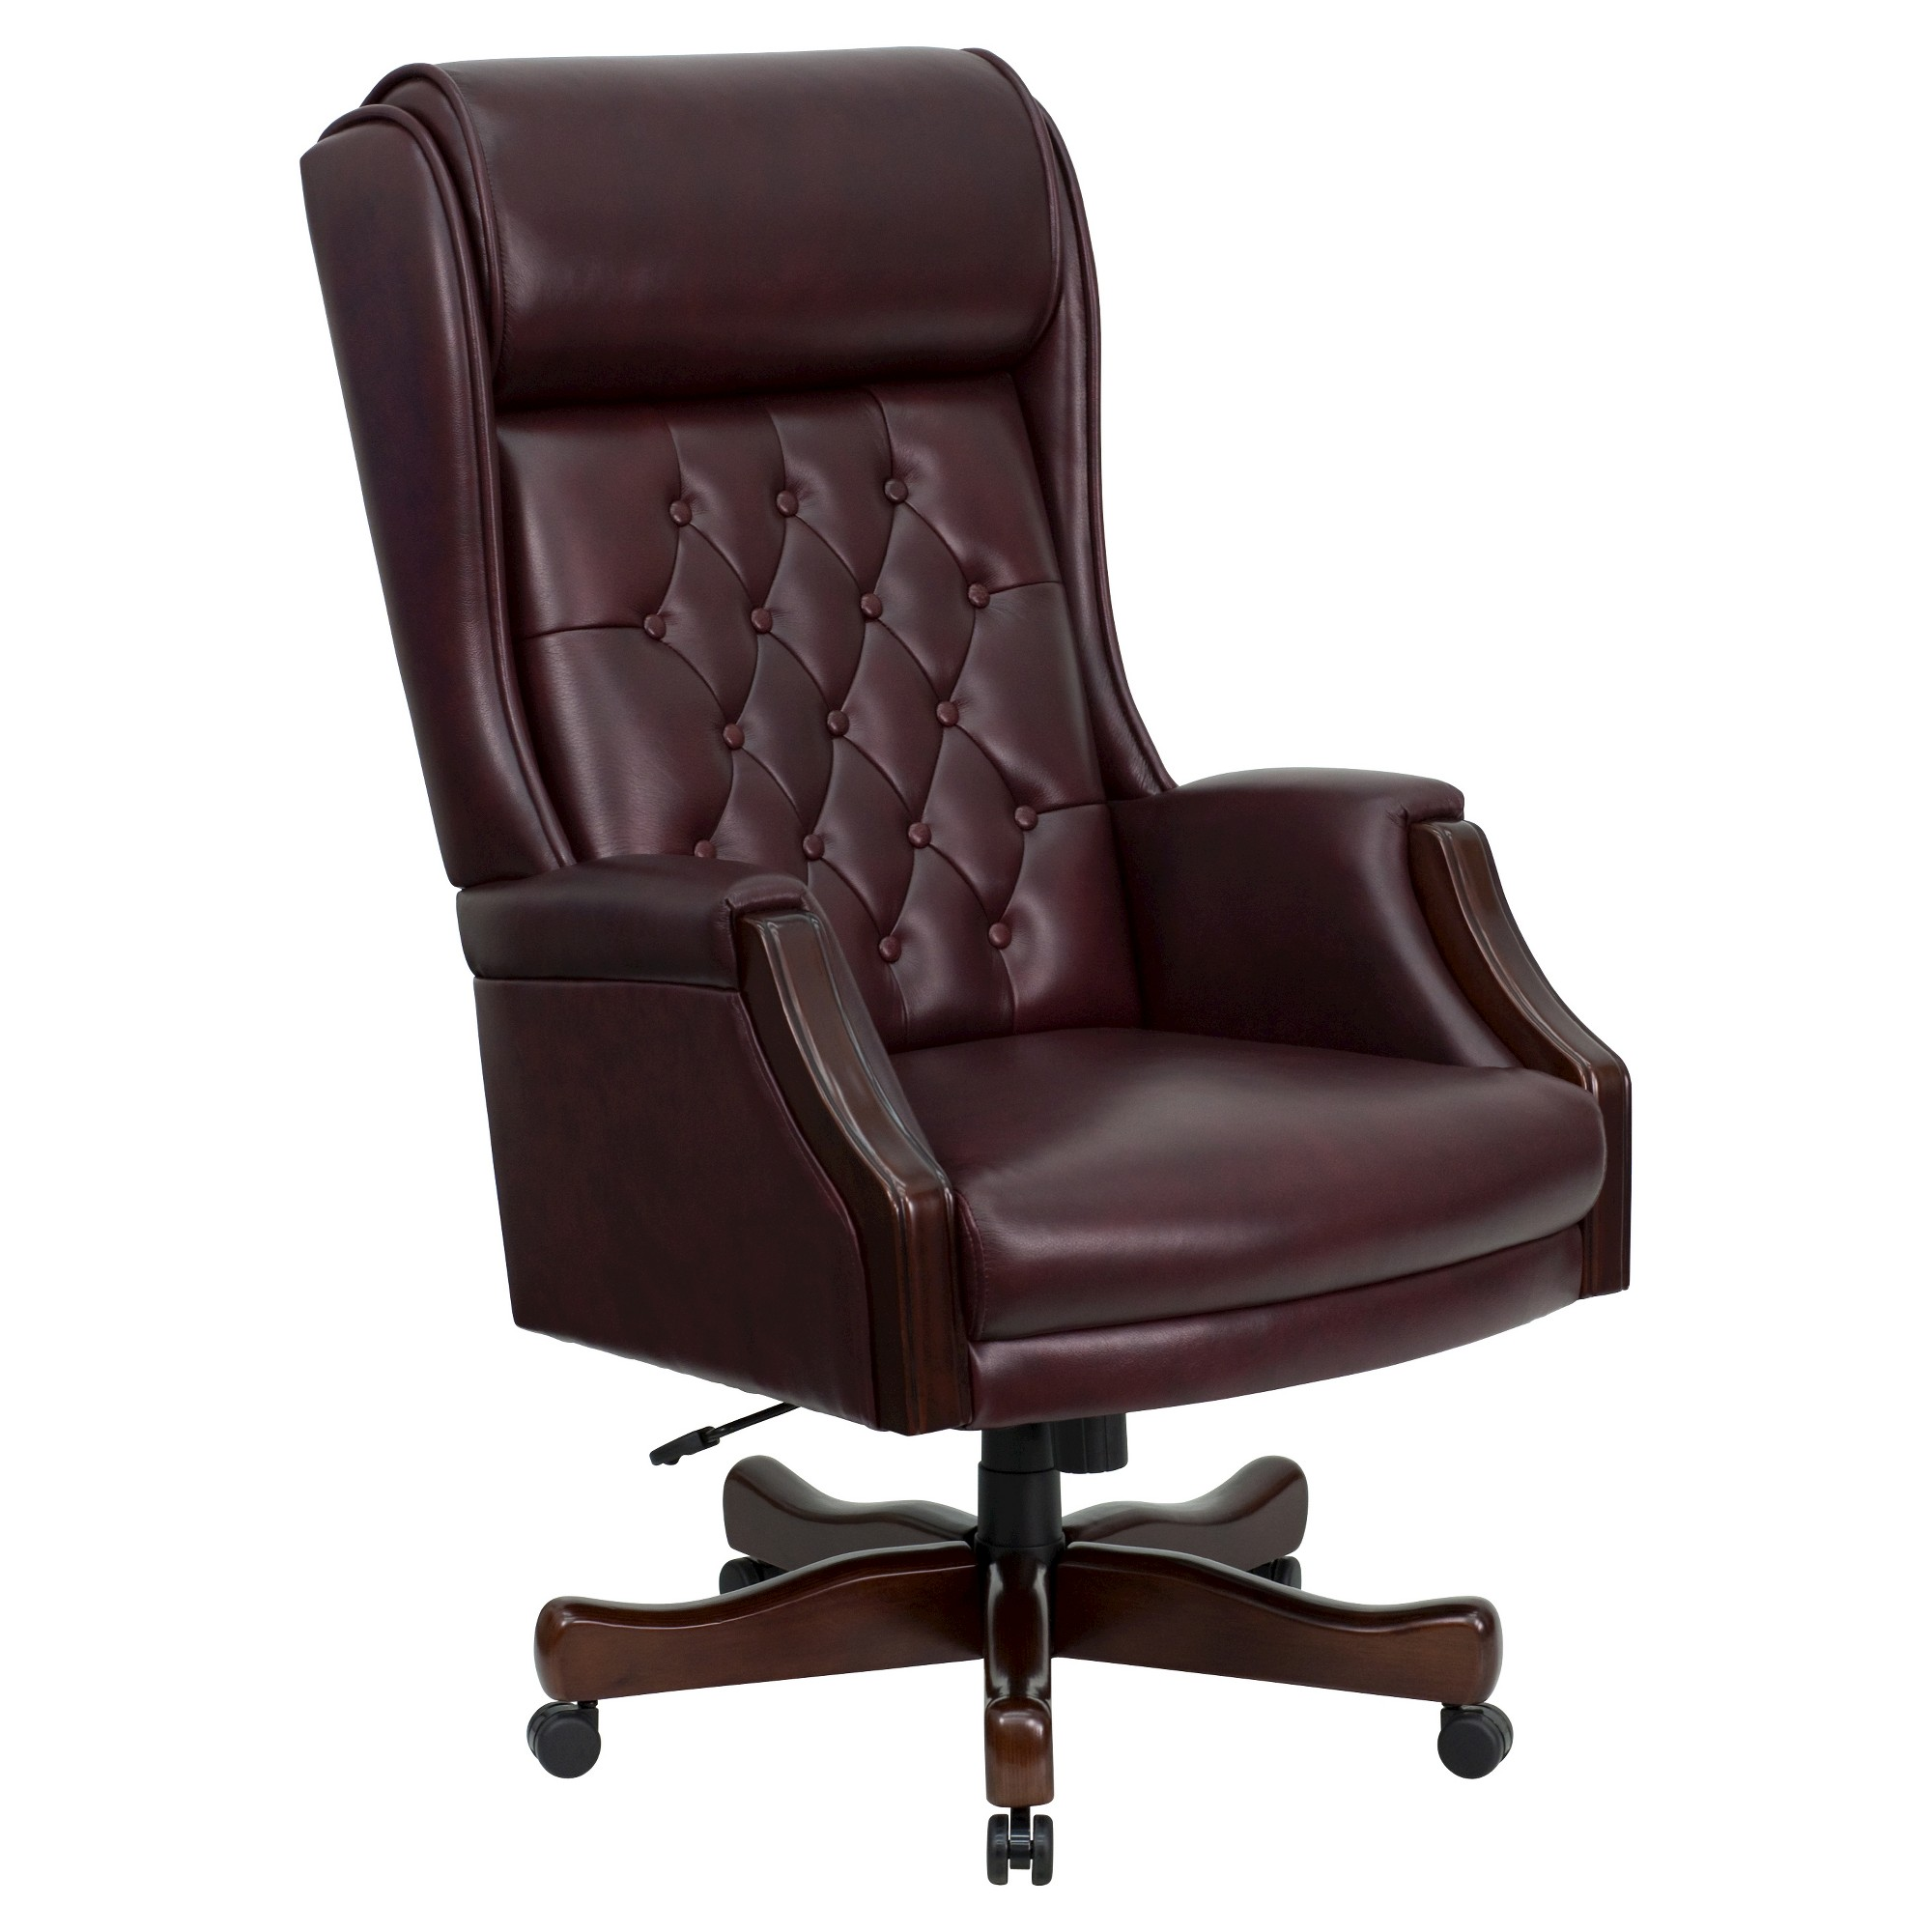 Executive swivel office chair burgundy red leather flash furniture